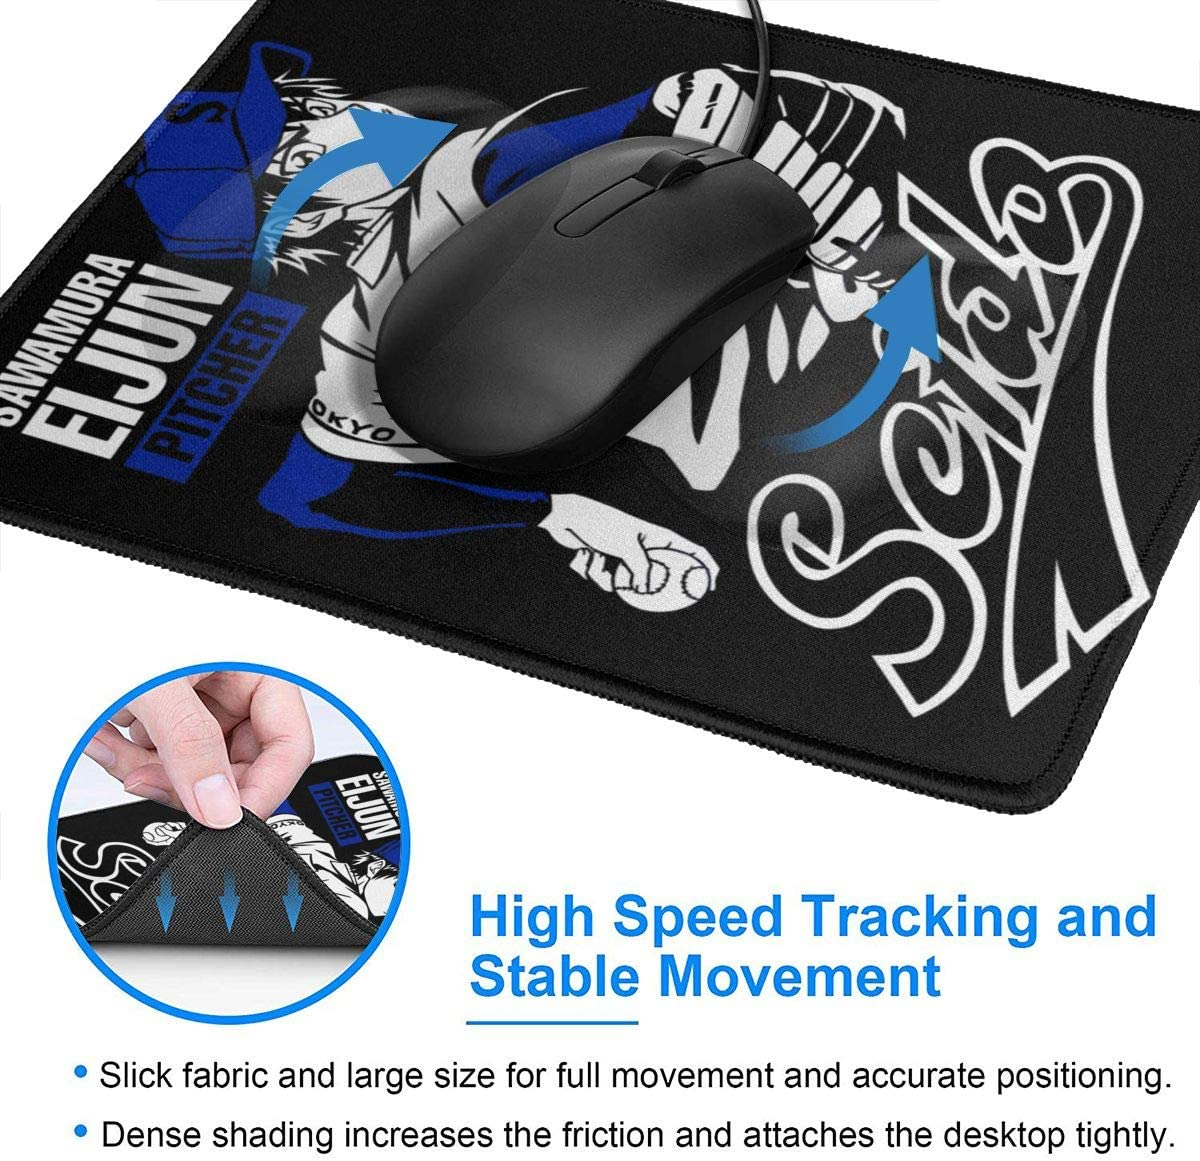 Diamond No Ace Kazuya Miyuki Mouse Pad Non-Slip Gaming Mouse Pad with Stitched Edge Computer PC Mousepad Rubber Base for Office Home